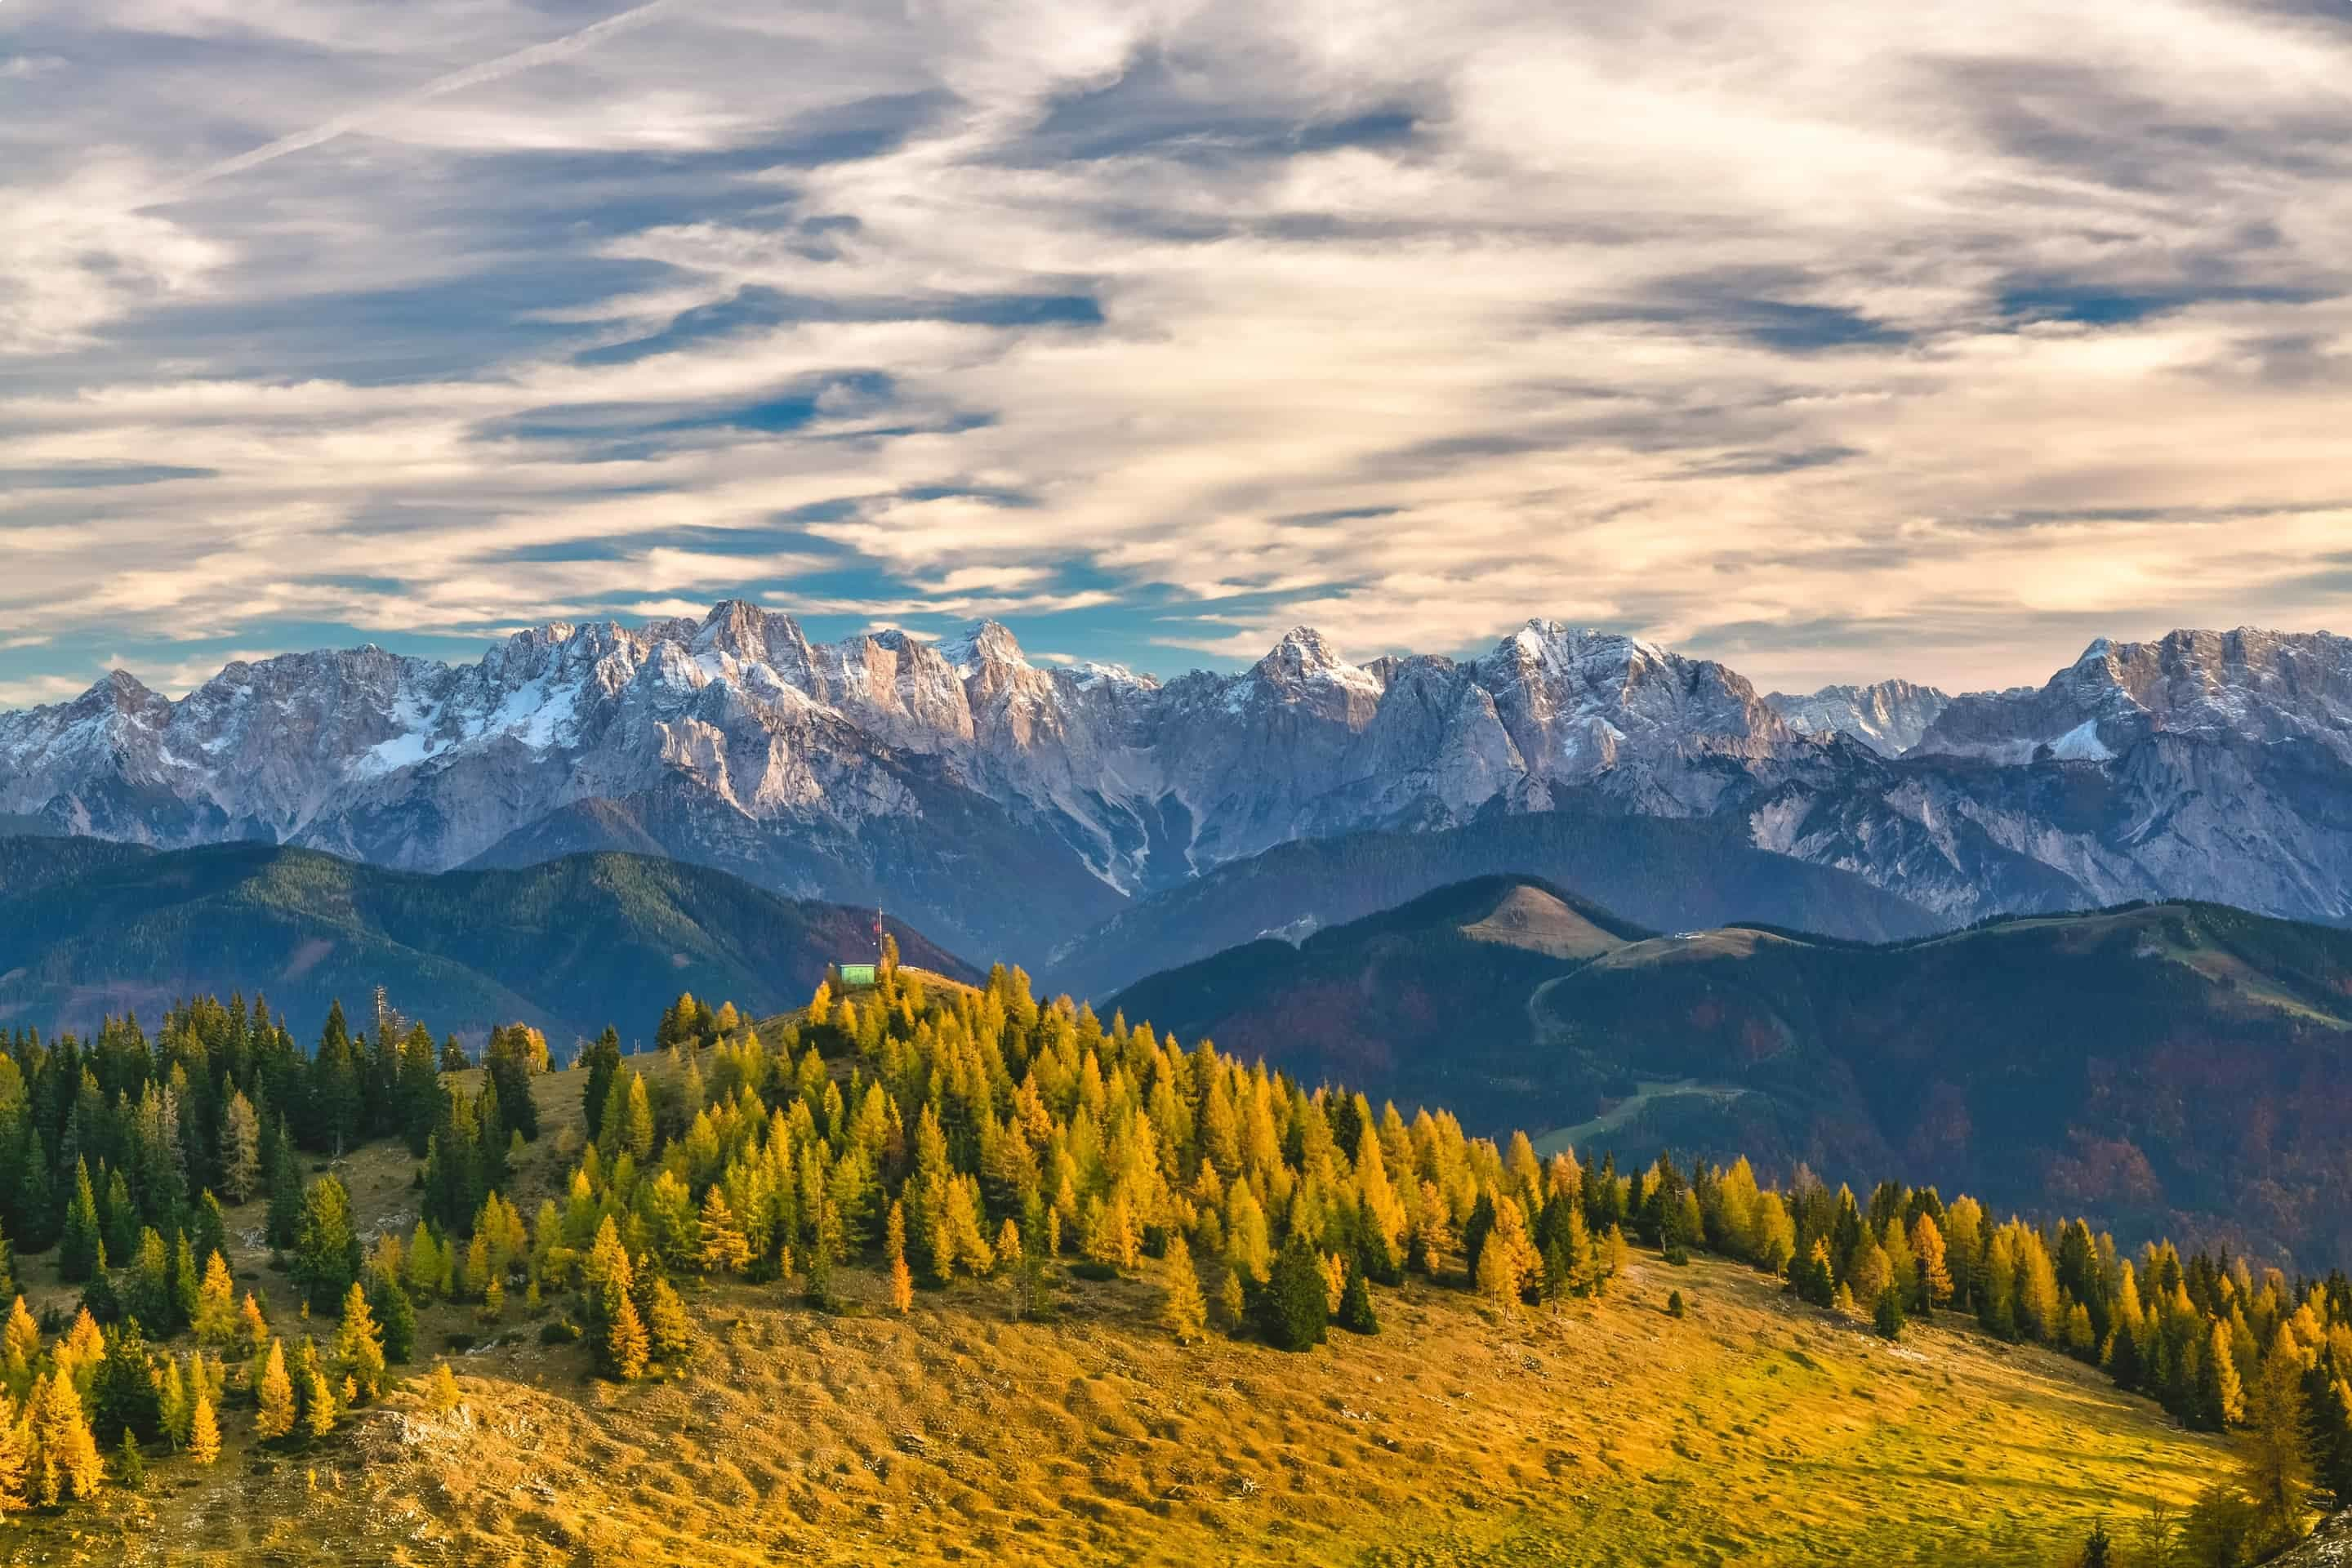 View of the Alps in Austria